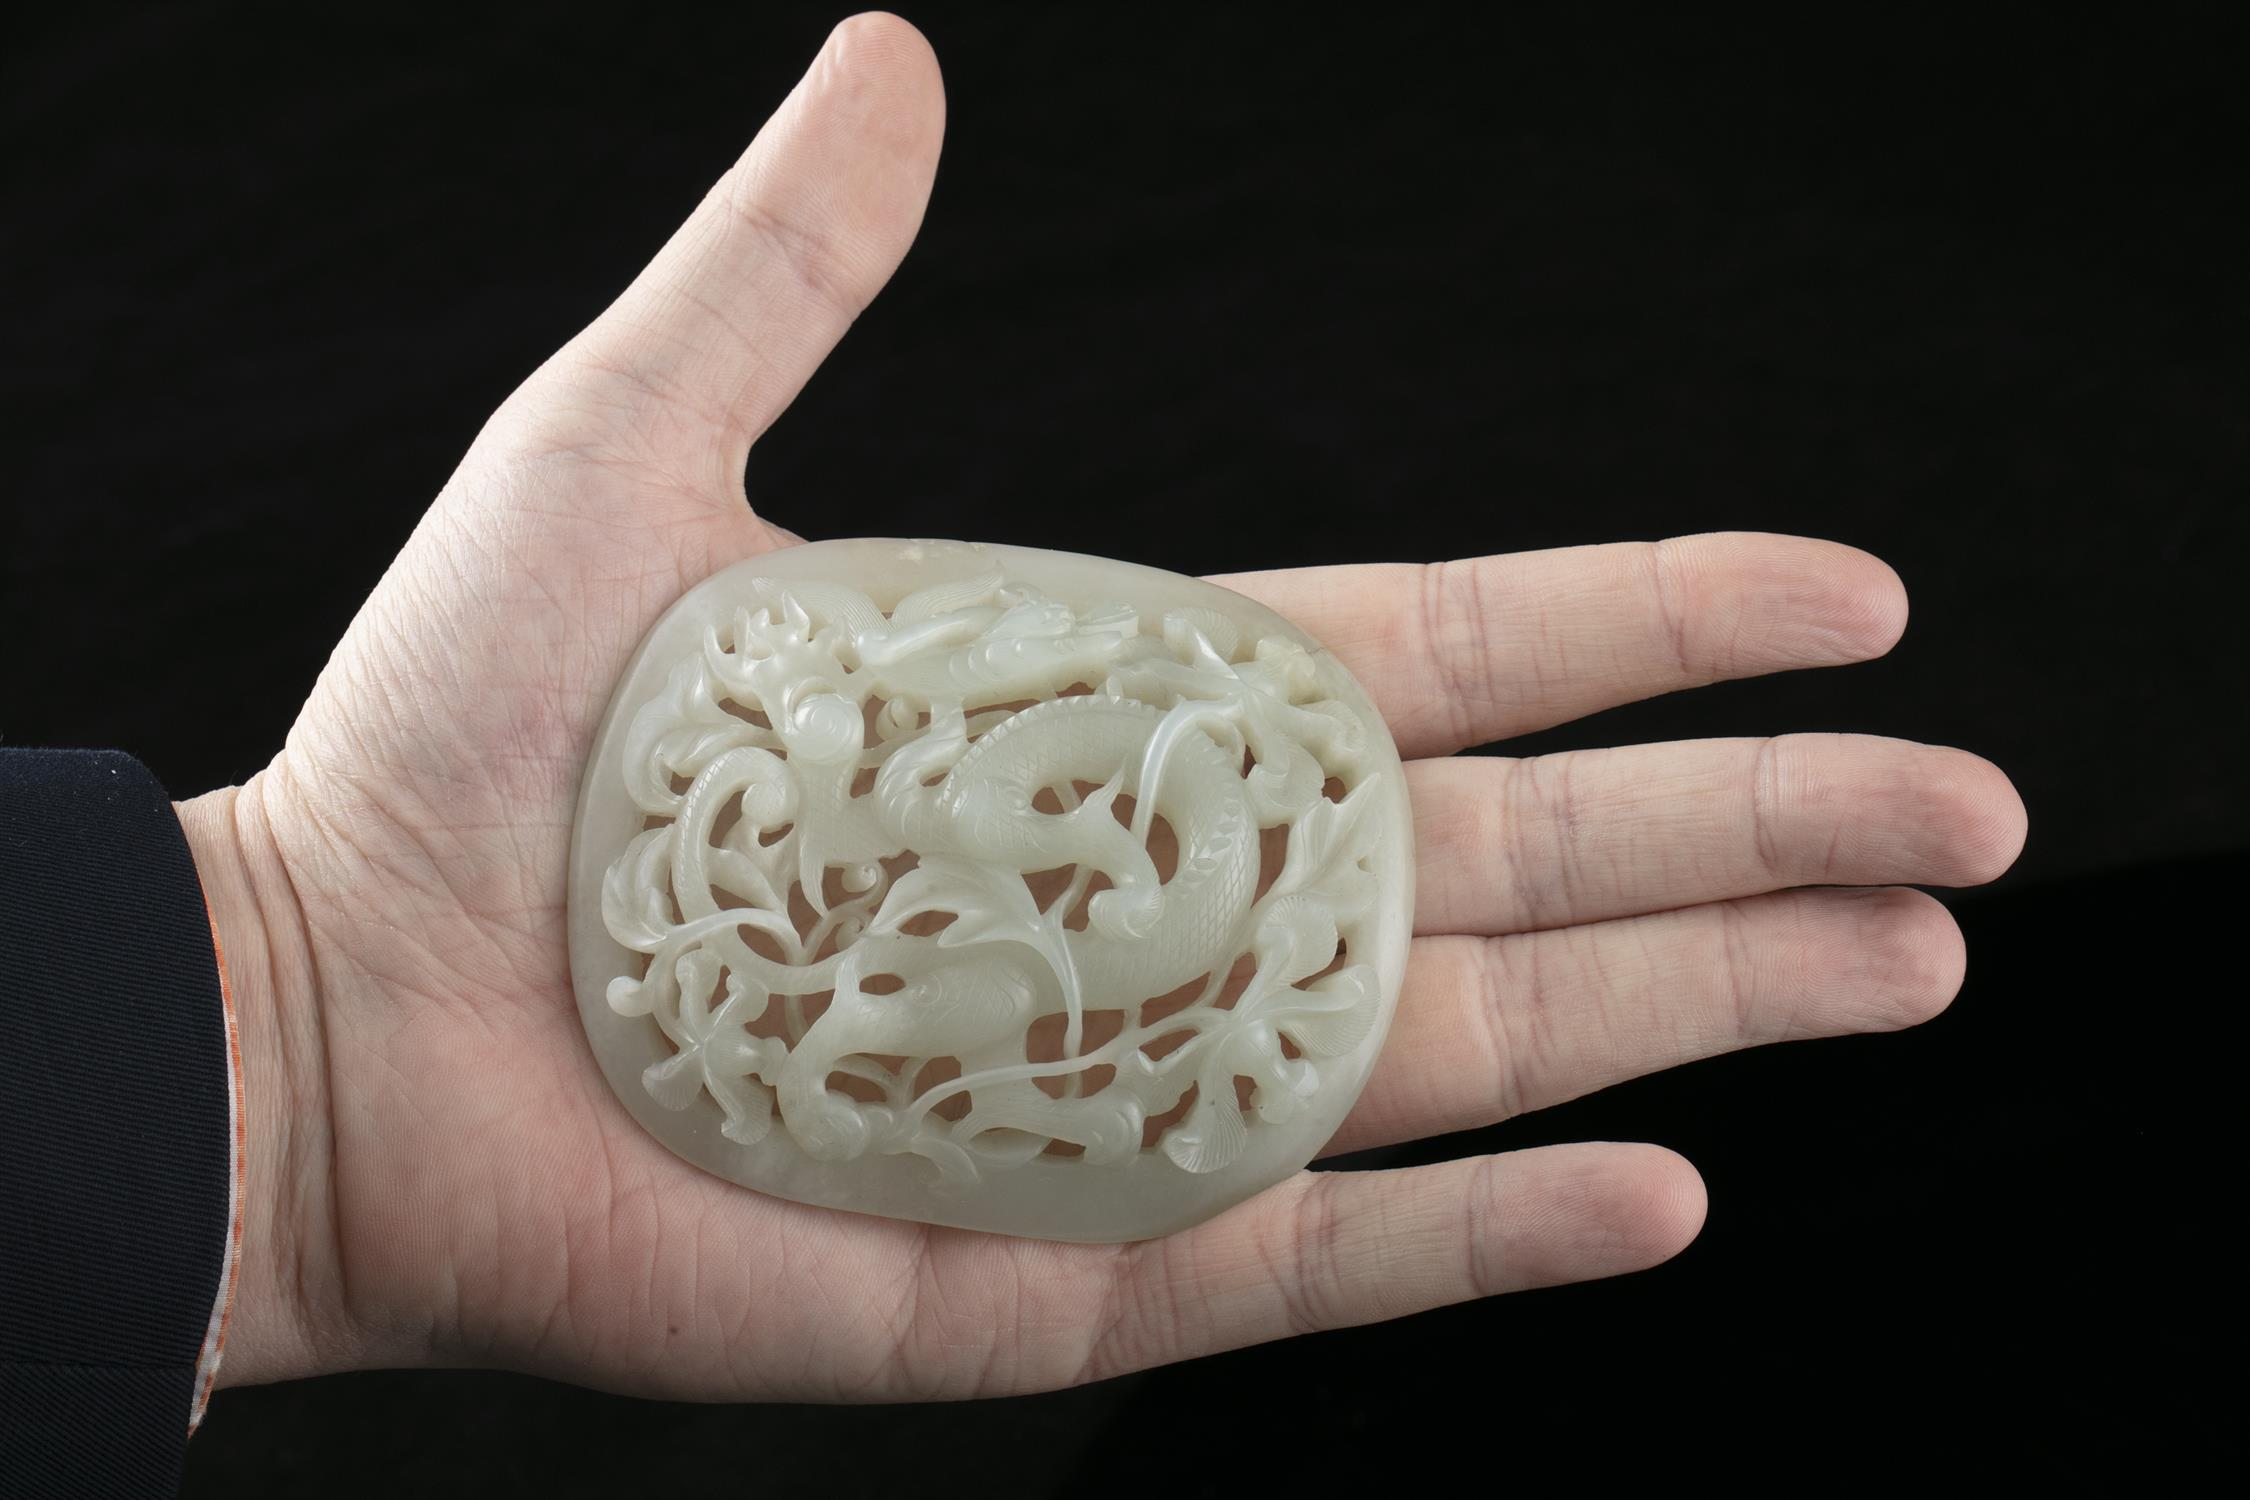 AN OPEN-WORKED WHITE JADE 'DRAGON' PLAQUE China, Antique, Possibly Ming Dynasty H: 7,8 cm - w: 9,2 - Image 20 of 20